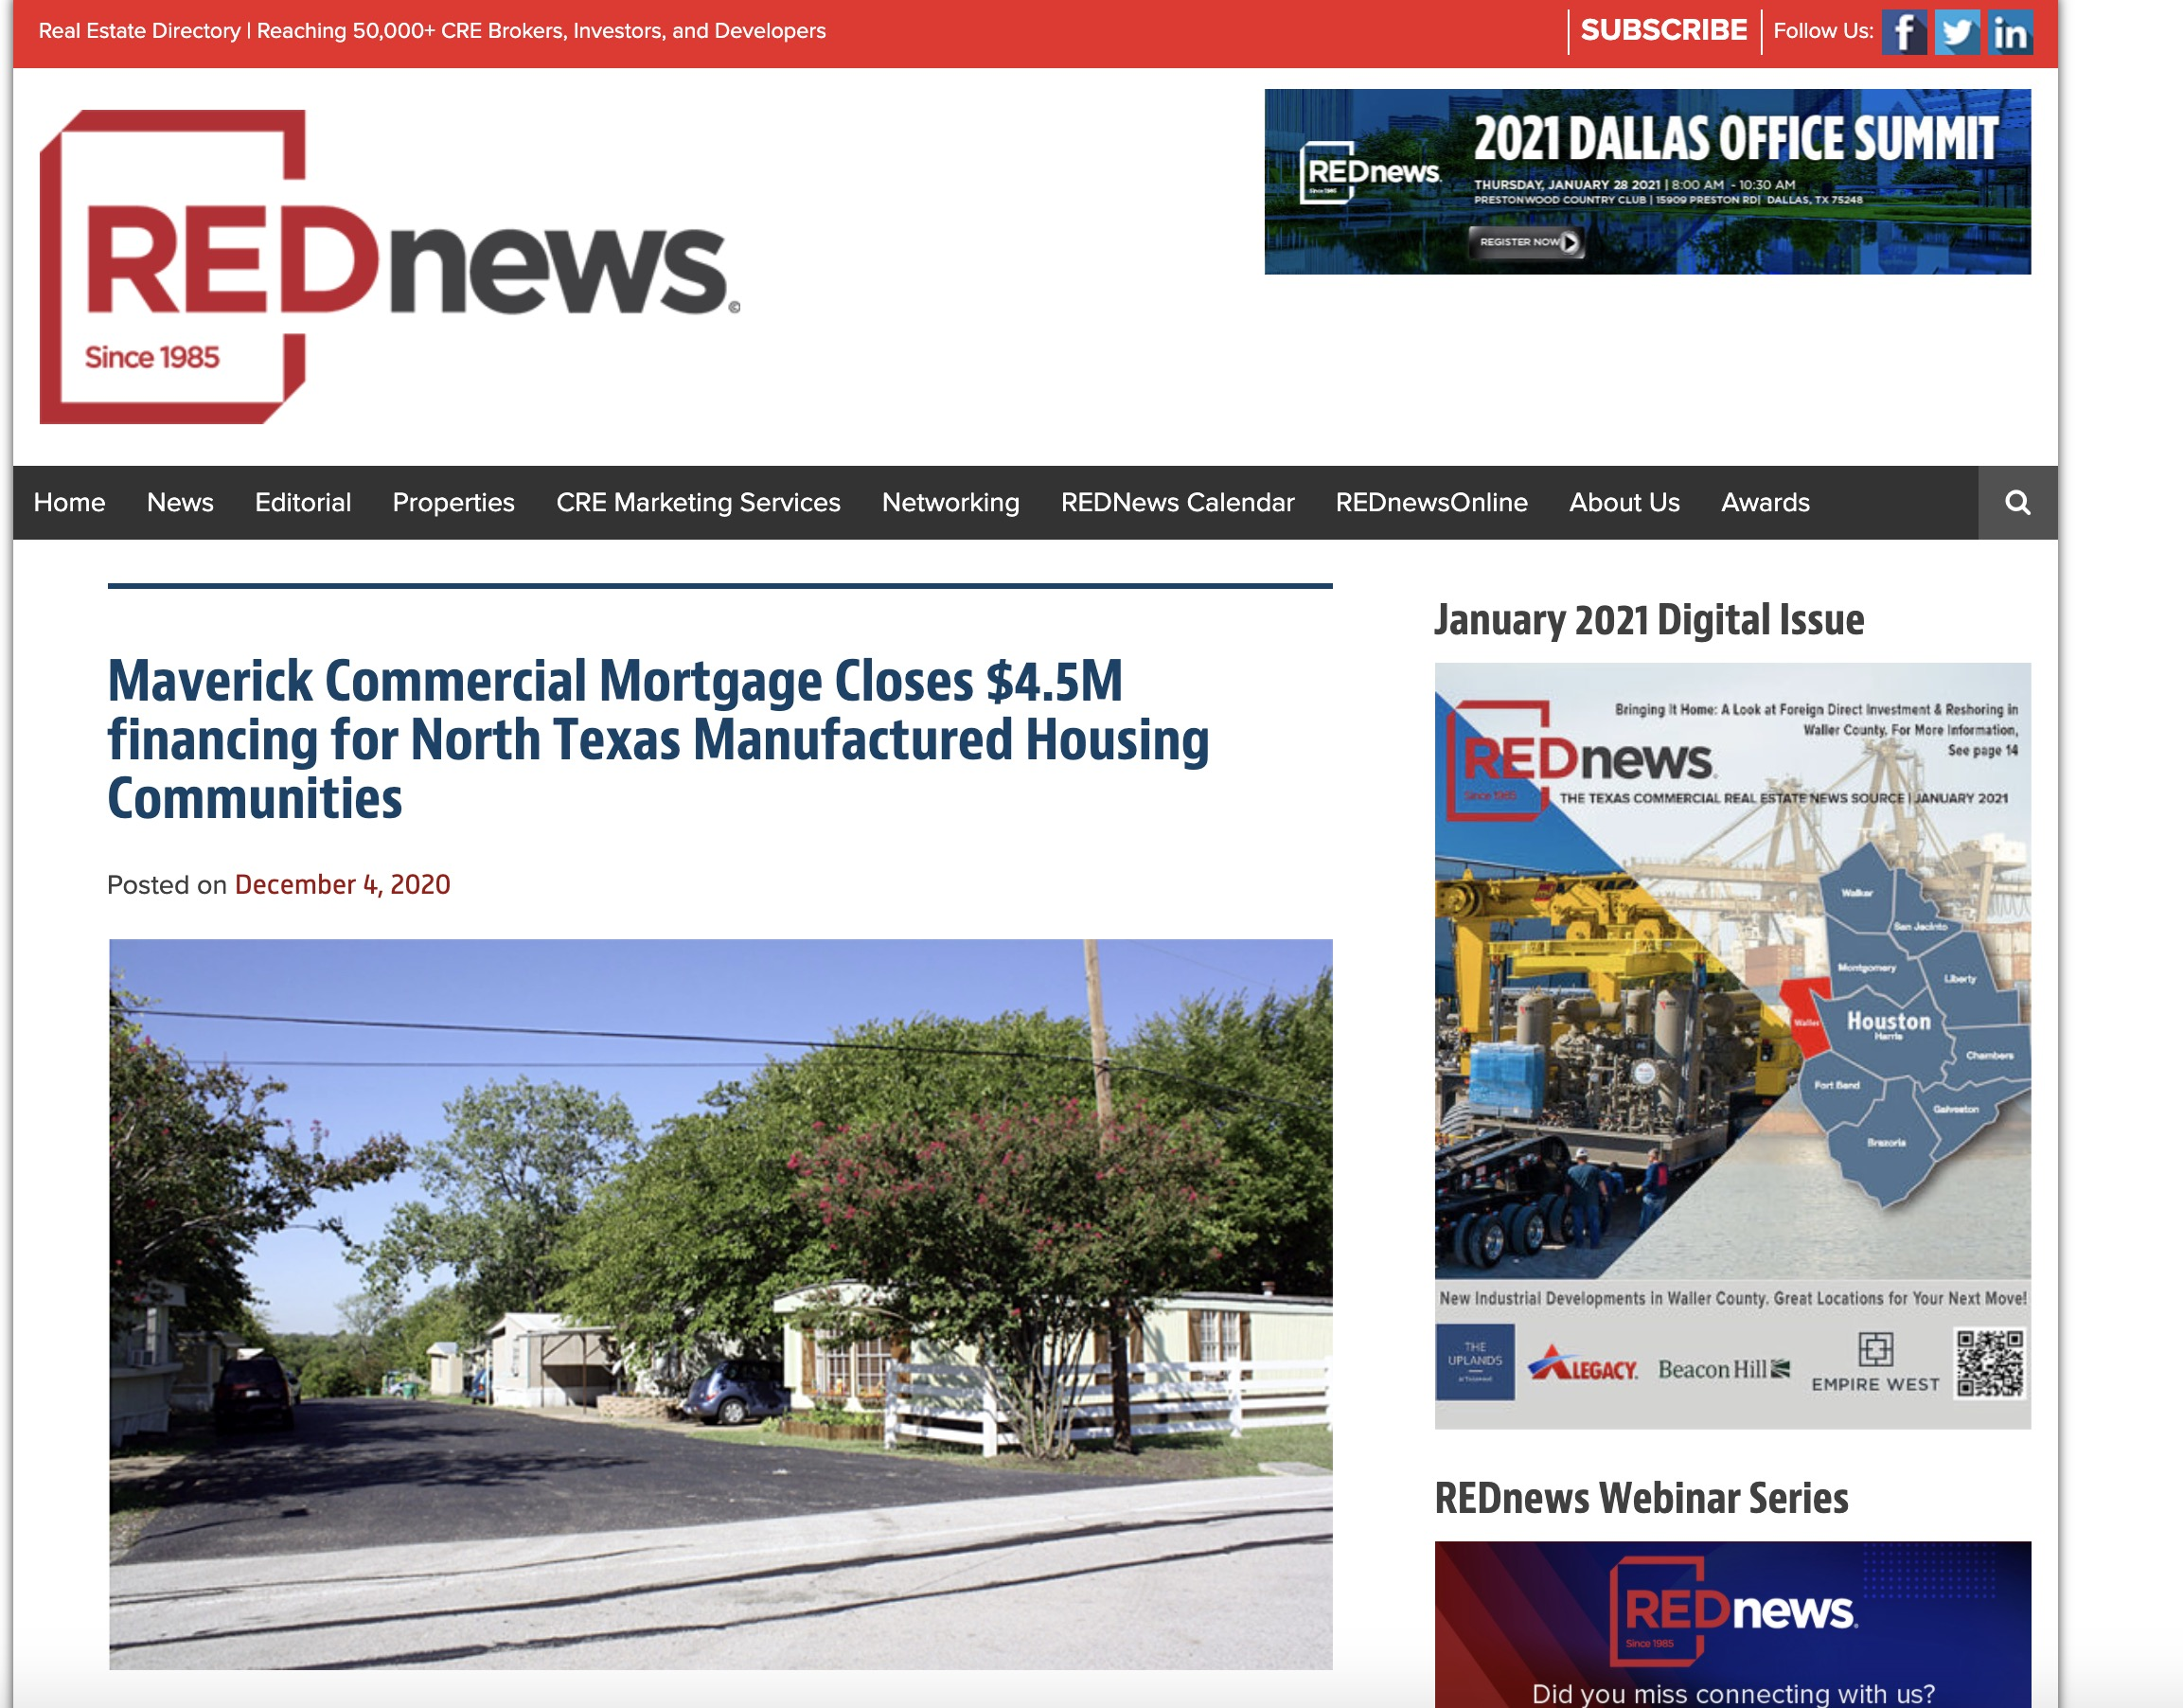 Maverick Commercial Mortgage Closes $4.5M financing for North Texas Manufactured Housing Communities